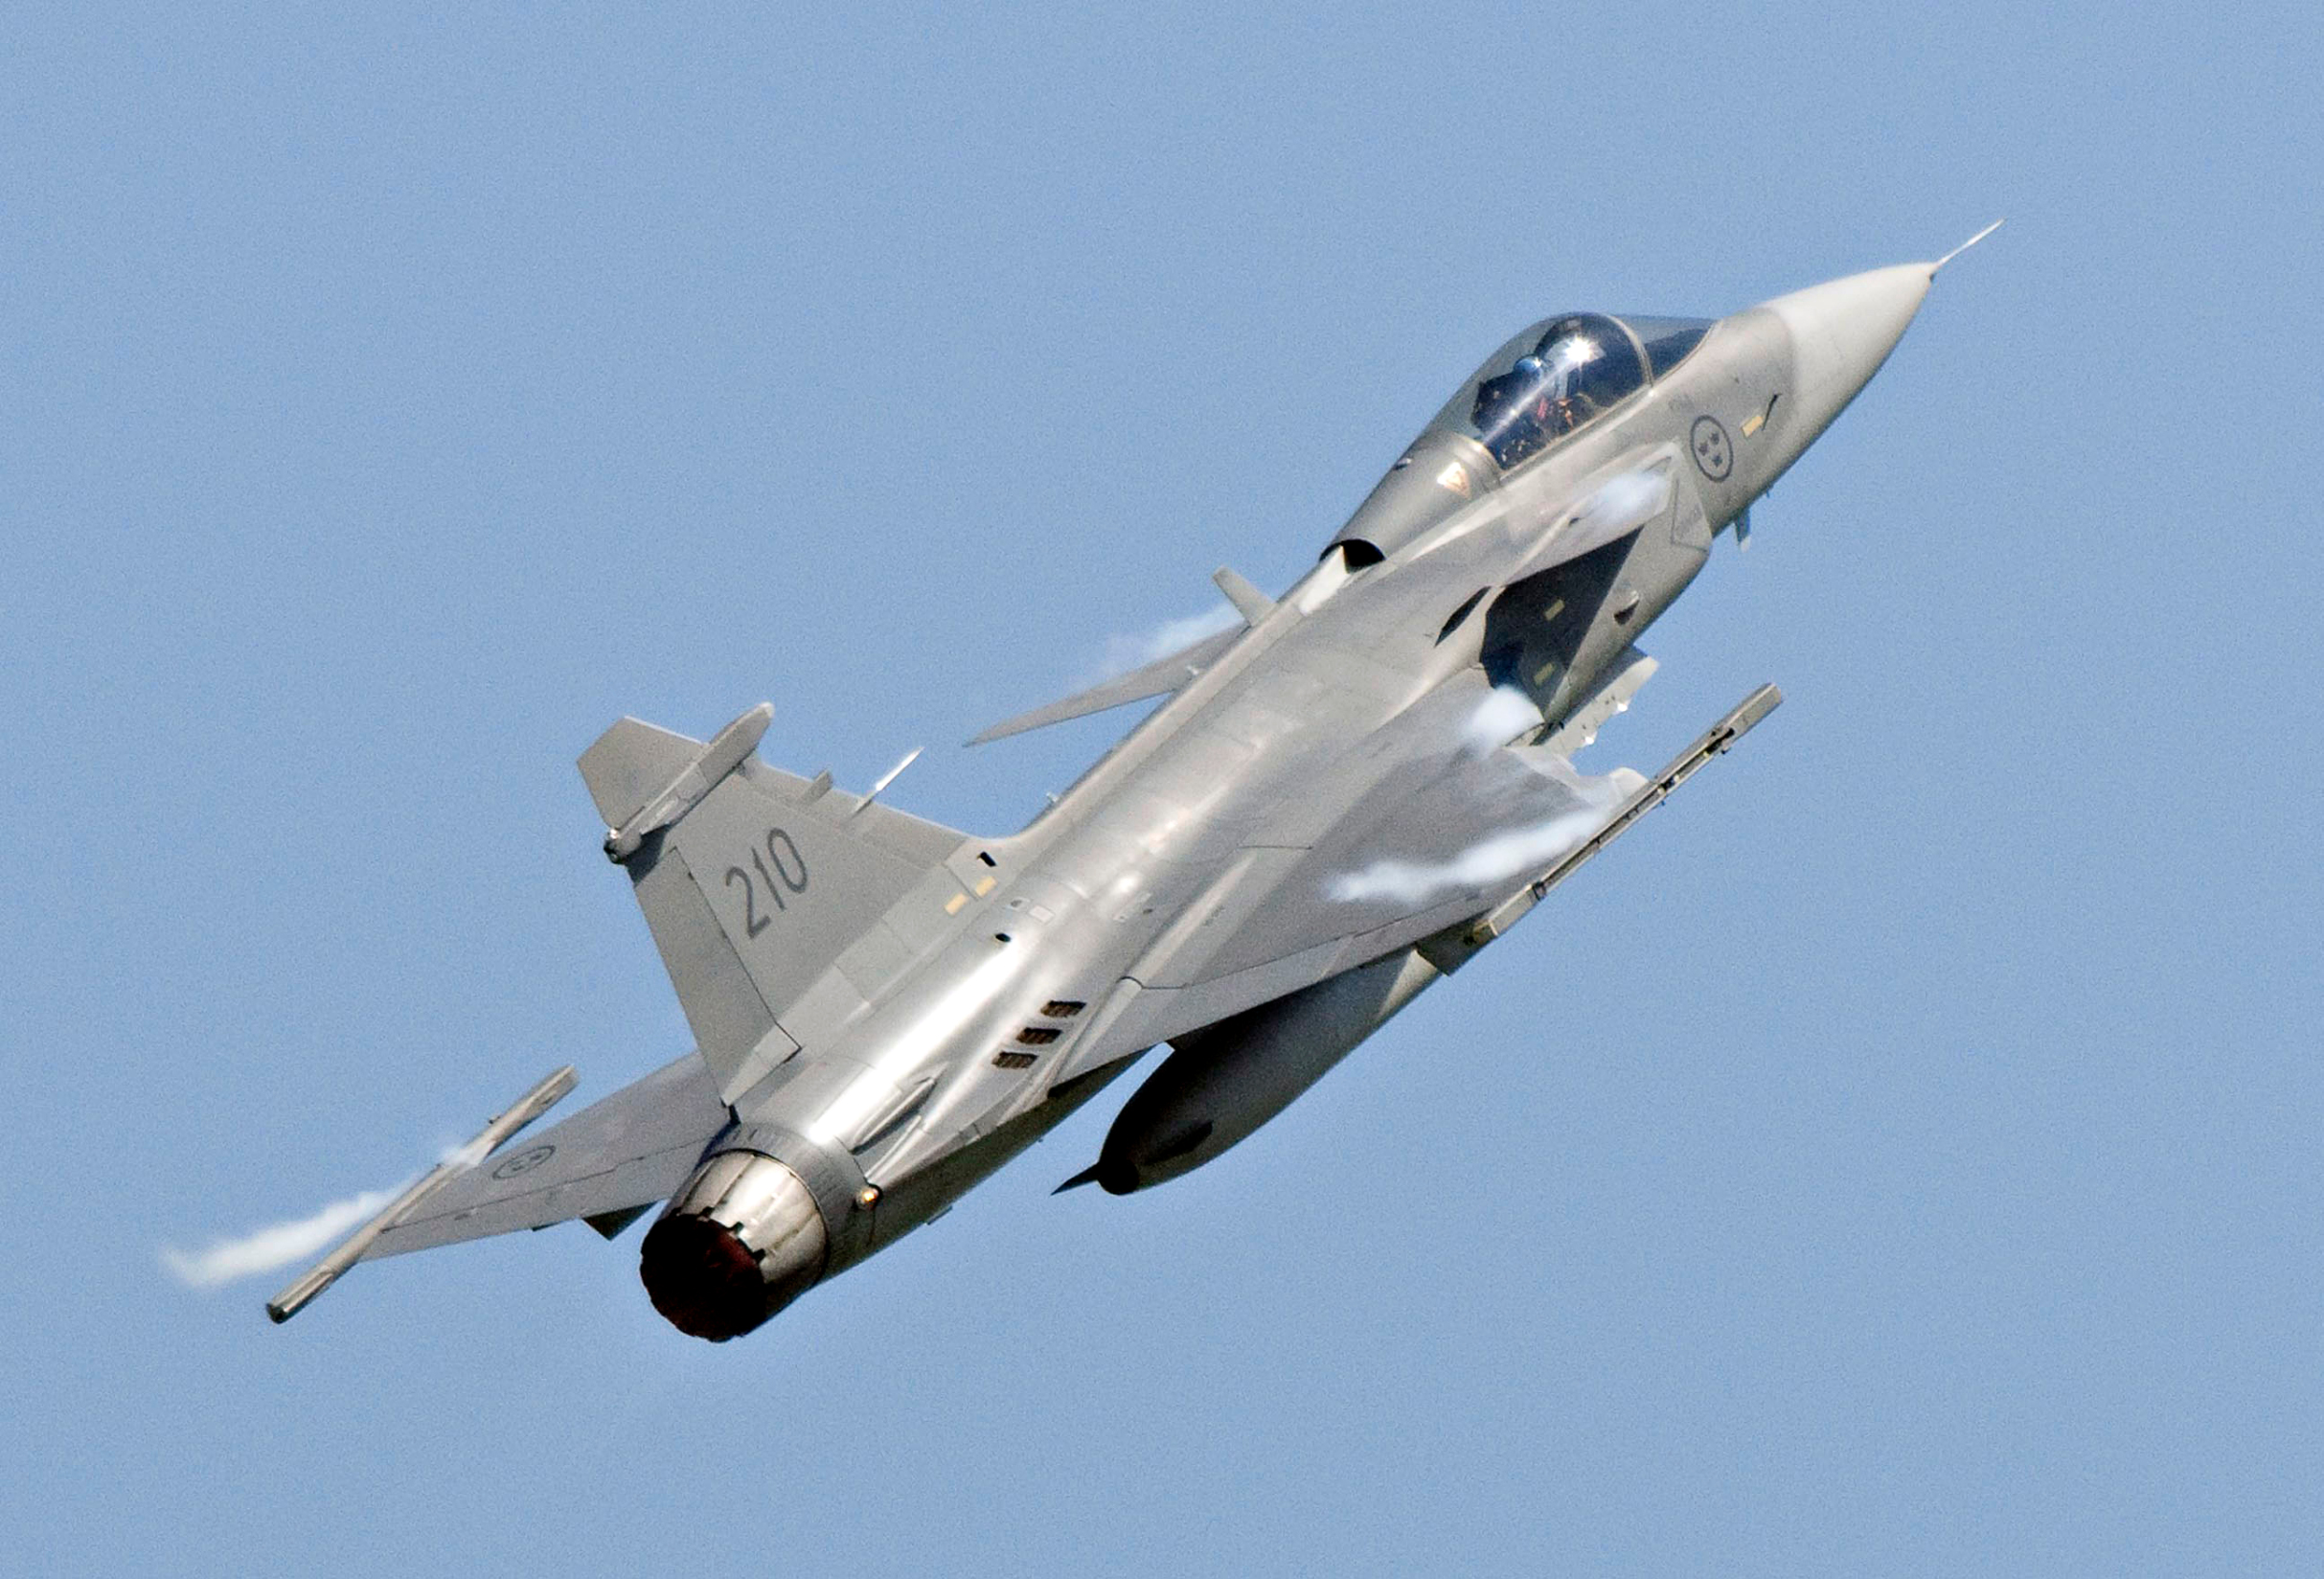 A Saab JAS 39C Gripen jet performs during an aerial show in Eslov in this June 5, 2011 file photo. Brazil on December 18, 2013 awarded a .5 billion contract to Saab AB to replace its aging fleet of fighter jets, a surprise coup for the Swedish company after news of U.S. spying on Brazilians helped derail Boeing's chances for the deal. The contract, negotiated over the course of three consecutive Brazilian presidencies, will supply Brazil's air force with 36 new Gripen NG fighters through 2023. Aside from the cost of the jets themselves, the agreement is also expected to generate billions of additional dollars in future supply and service contracts.  REUTERS/Johan Nilsson/TT News Agency/Files (SWEDEN - Tags: TRANSPORT MILITARY BUSINESS) ATTENTION EDITORS - THIS IMAGE HAS BEEN SUPPLIED BY A THIRD PARTY. IT IS DISTRIBUTED, EXACTLY AS RECEIVED BY REUTERS, AS A SERVICE TO CLIENTS. SWEDEN OUT. NO COMMERCIAL OR EDITORIAL SALES IN SWEDEN - GM1E9CJ0HMA01